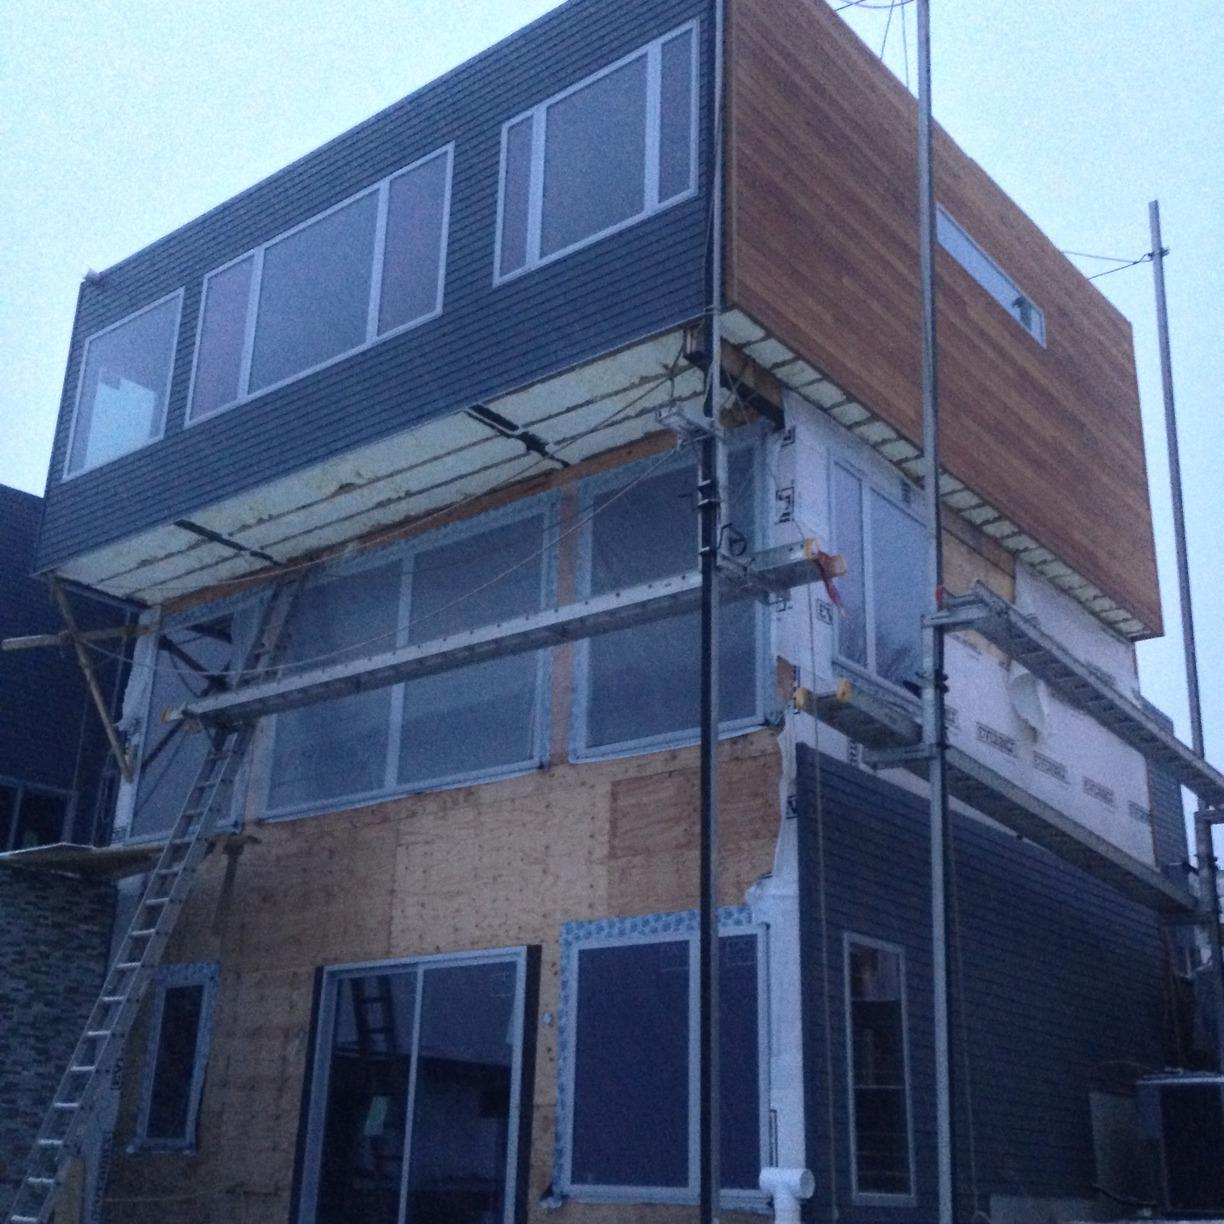 Insulating Cantilevers On A New Home - Orangeburg, NY - After Photo